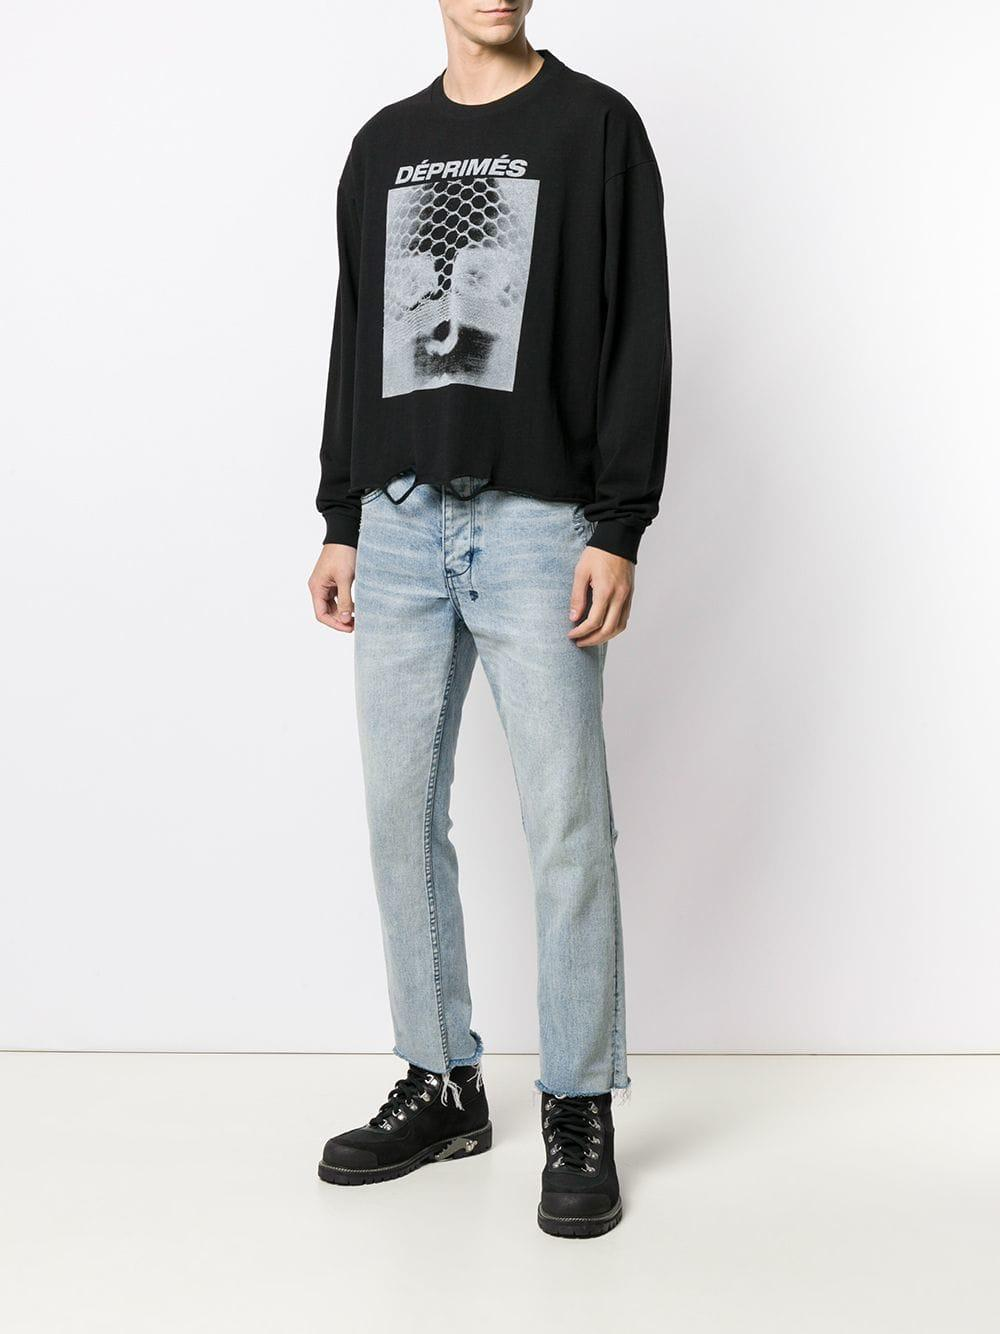 e5f893ae Enfants Riches Deprimes Ripped Detail Sweatshirt in Black for Men - Lyst